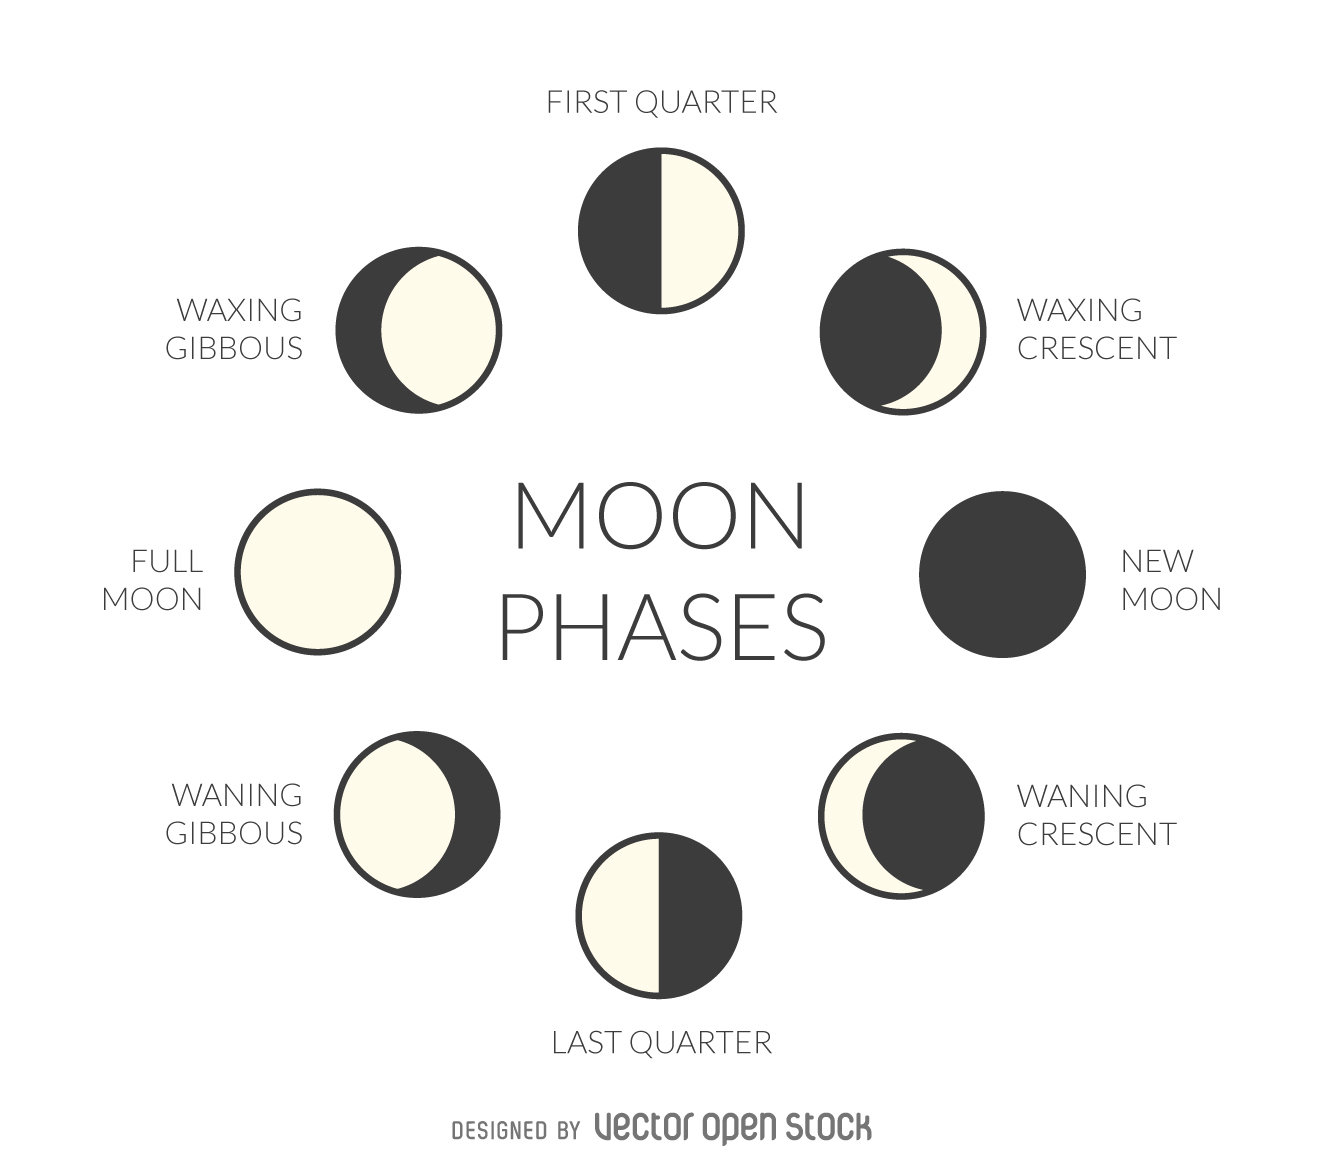 hight resolution of Phases Of The Moon Worksheets Printable   Printable Worksheets and  Activities for Teachers